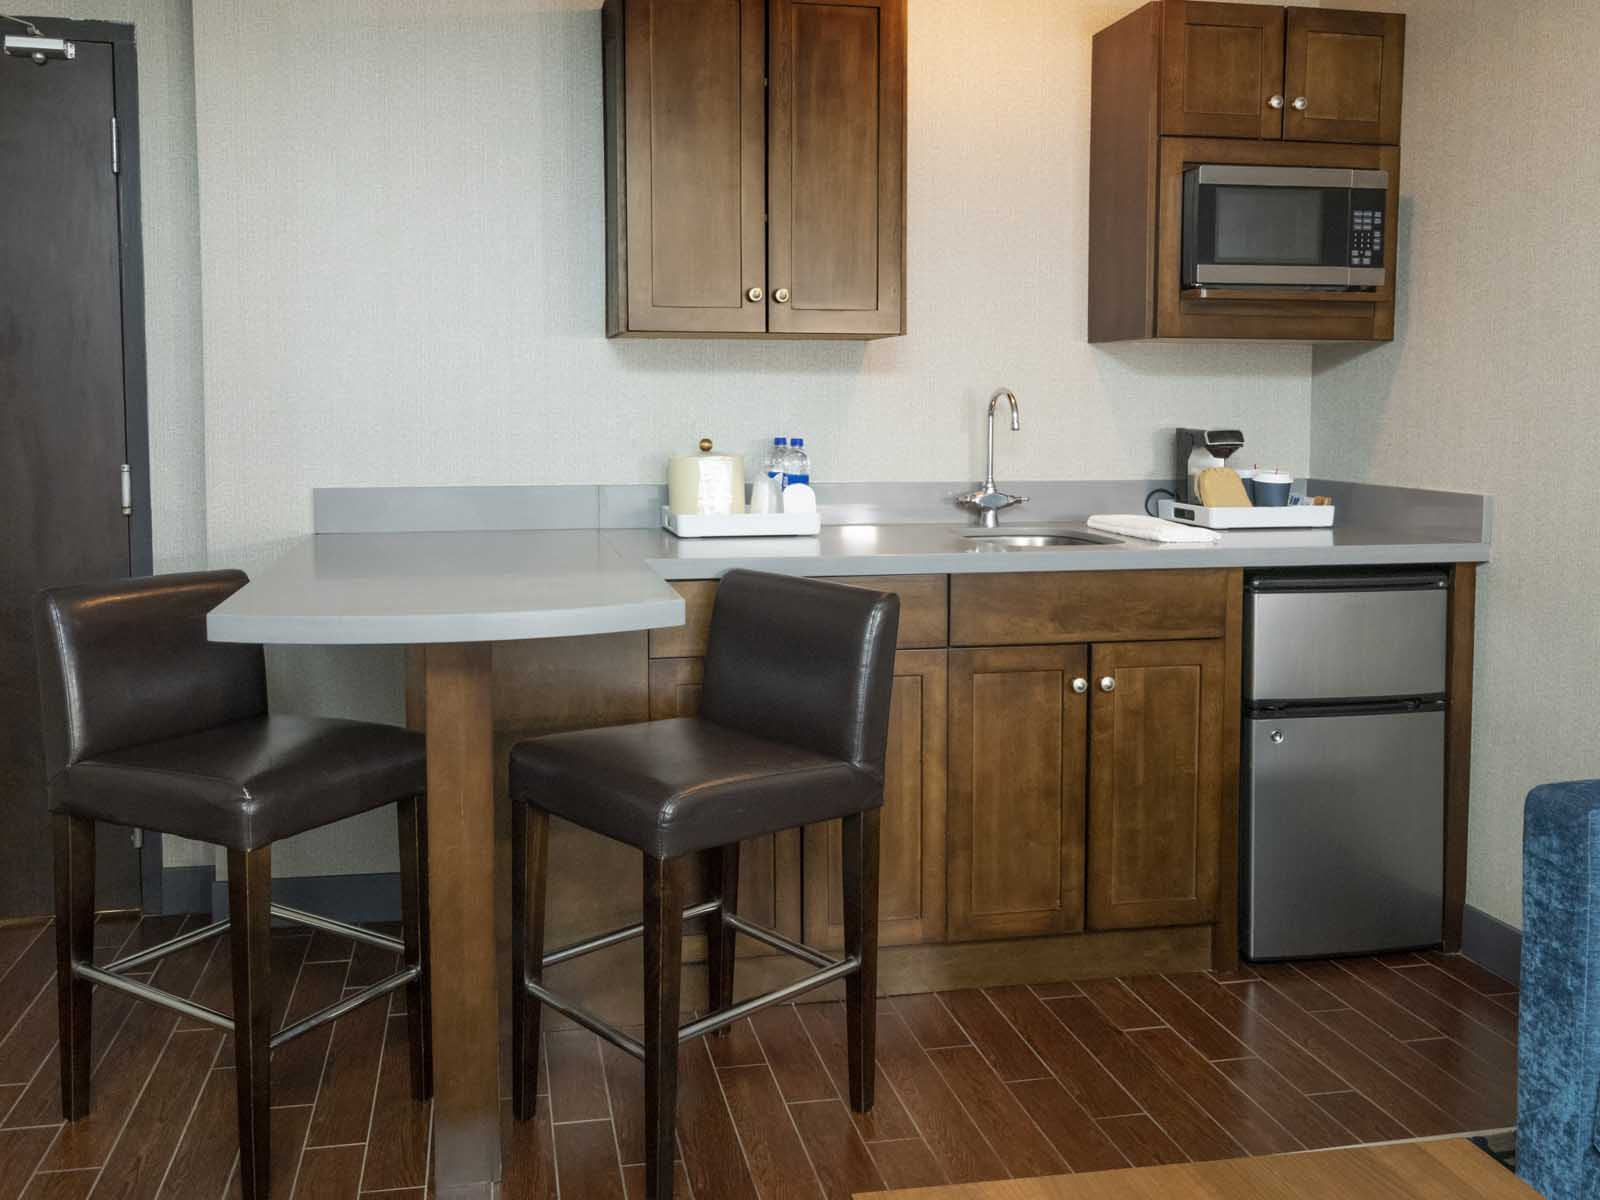 Niagara Riverside Resort - Kitchenette